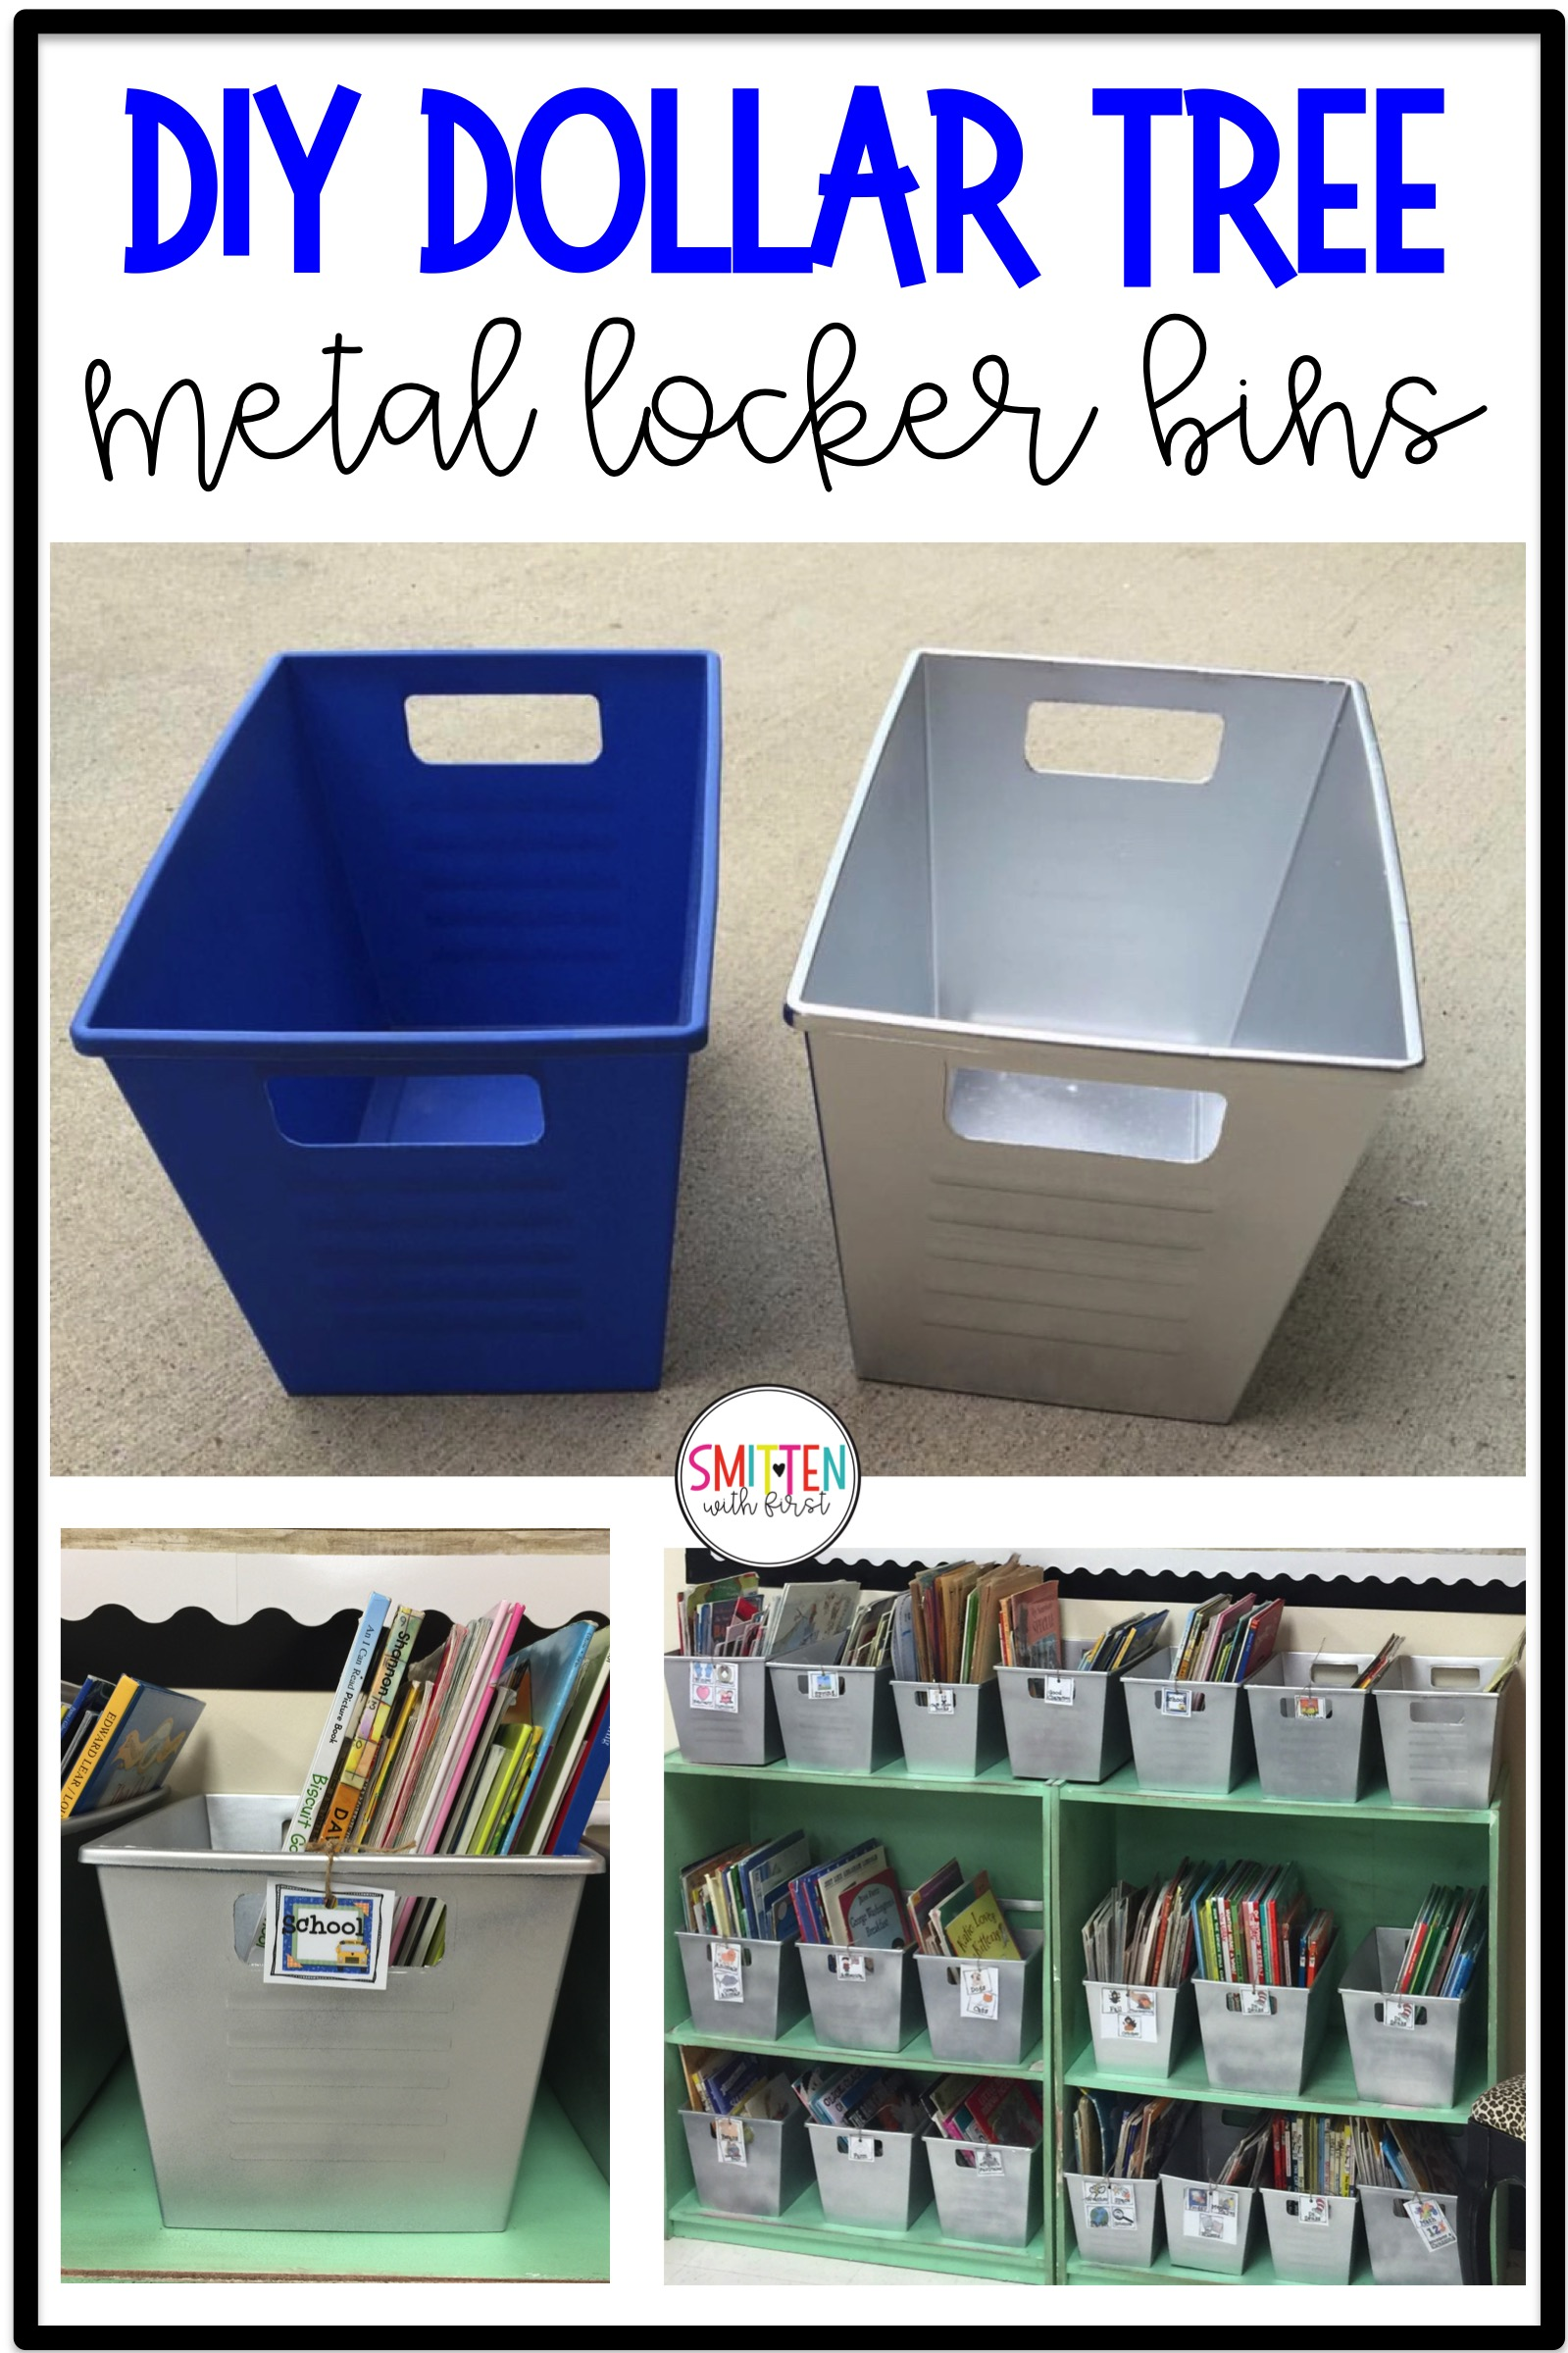 DIY Dollar Tree Metal Locker Bins